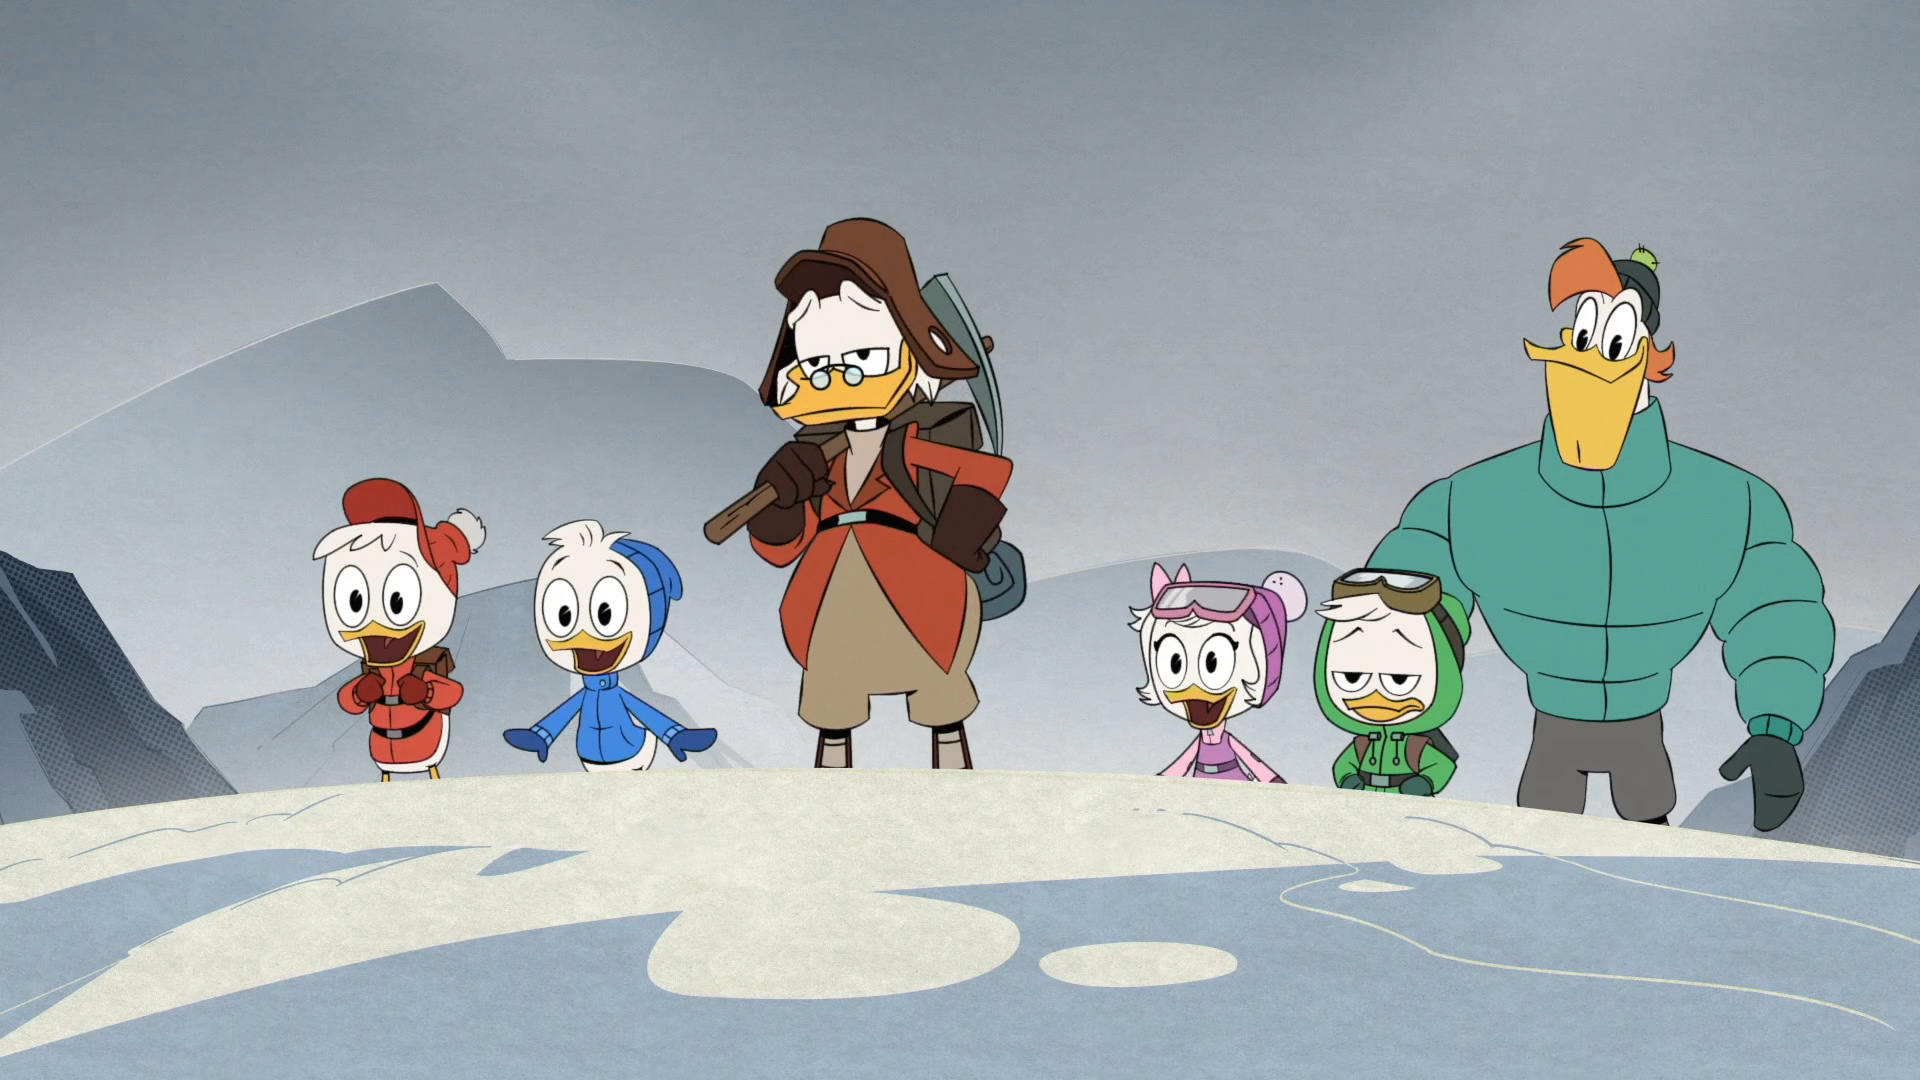 DuckTales Destination: Adventure